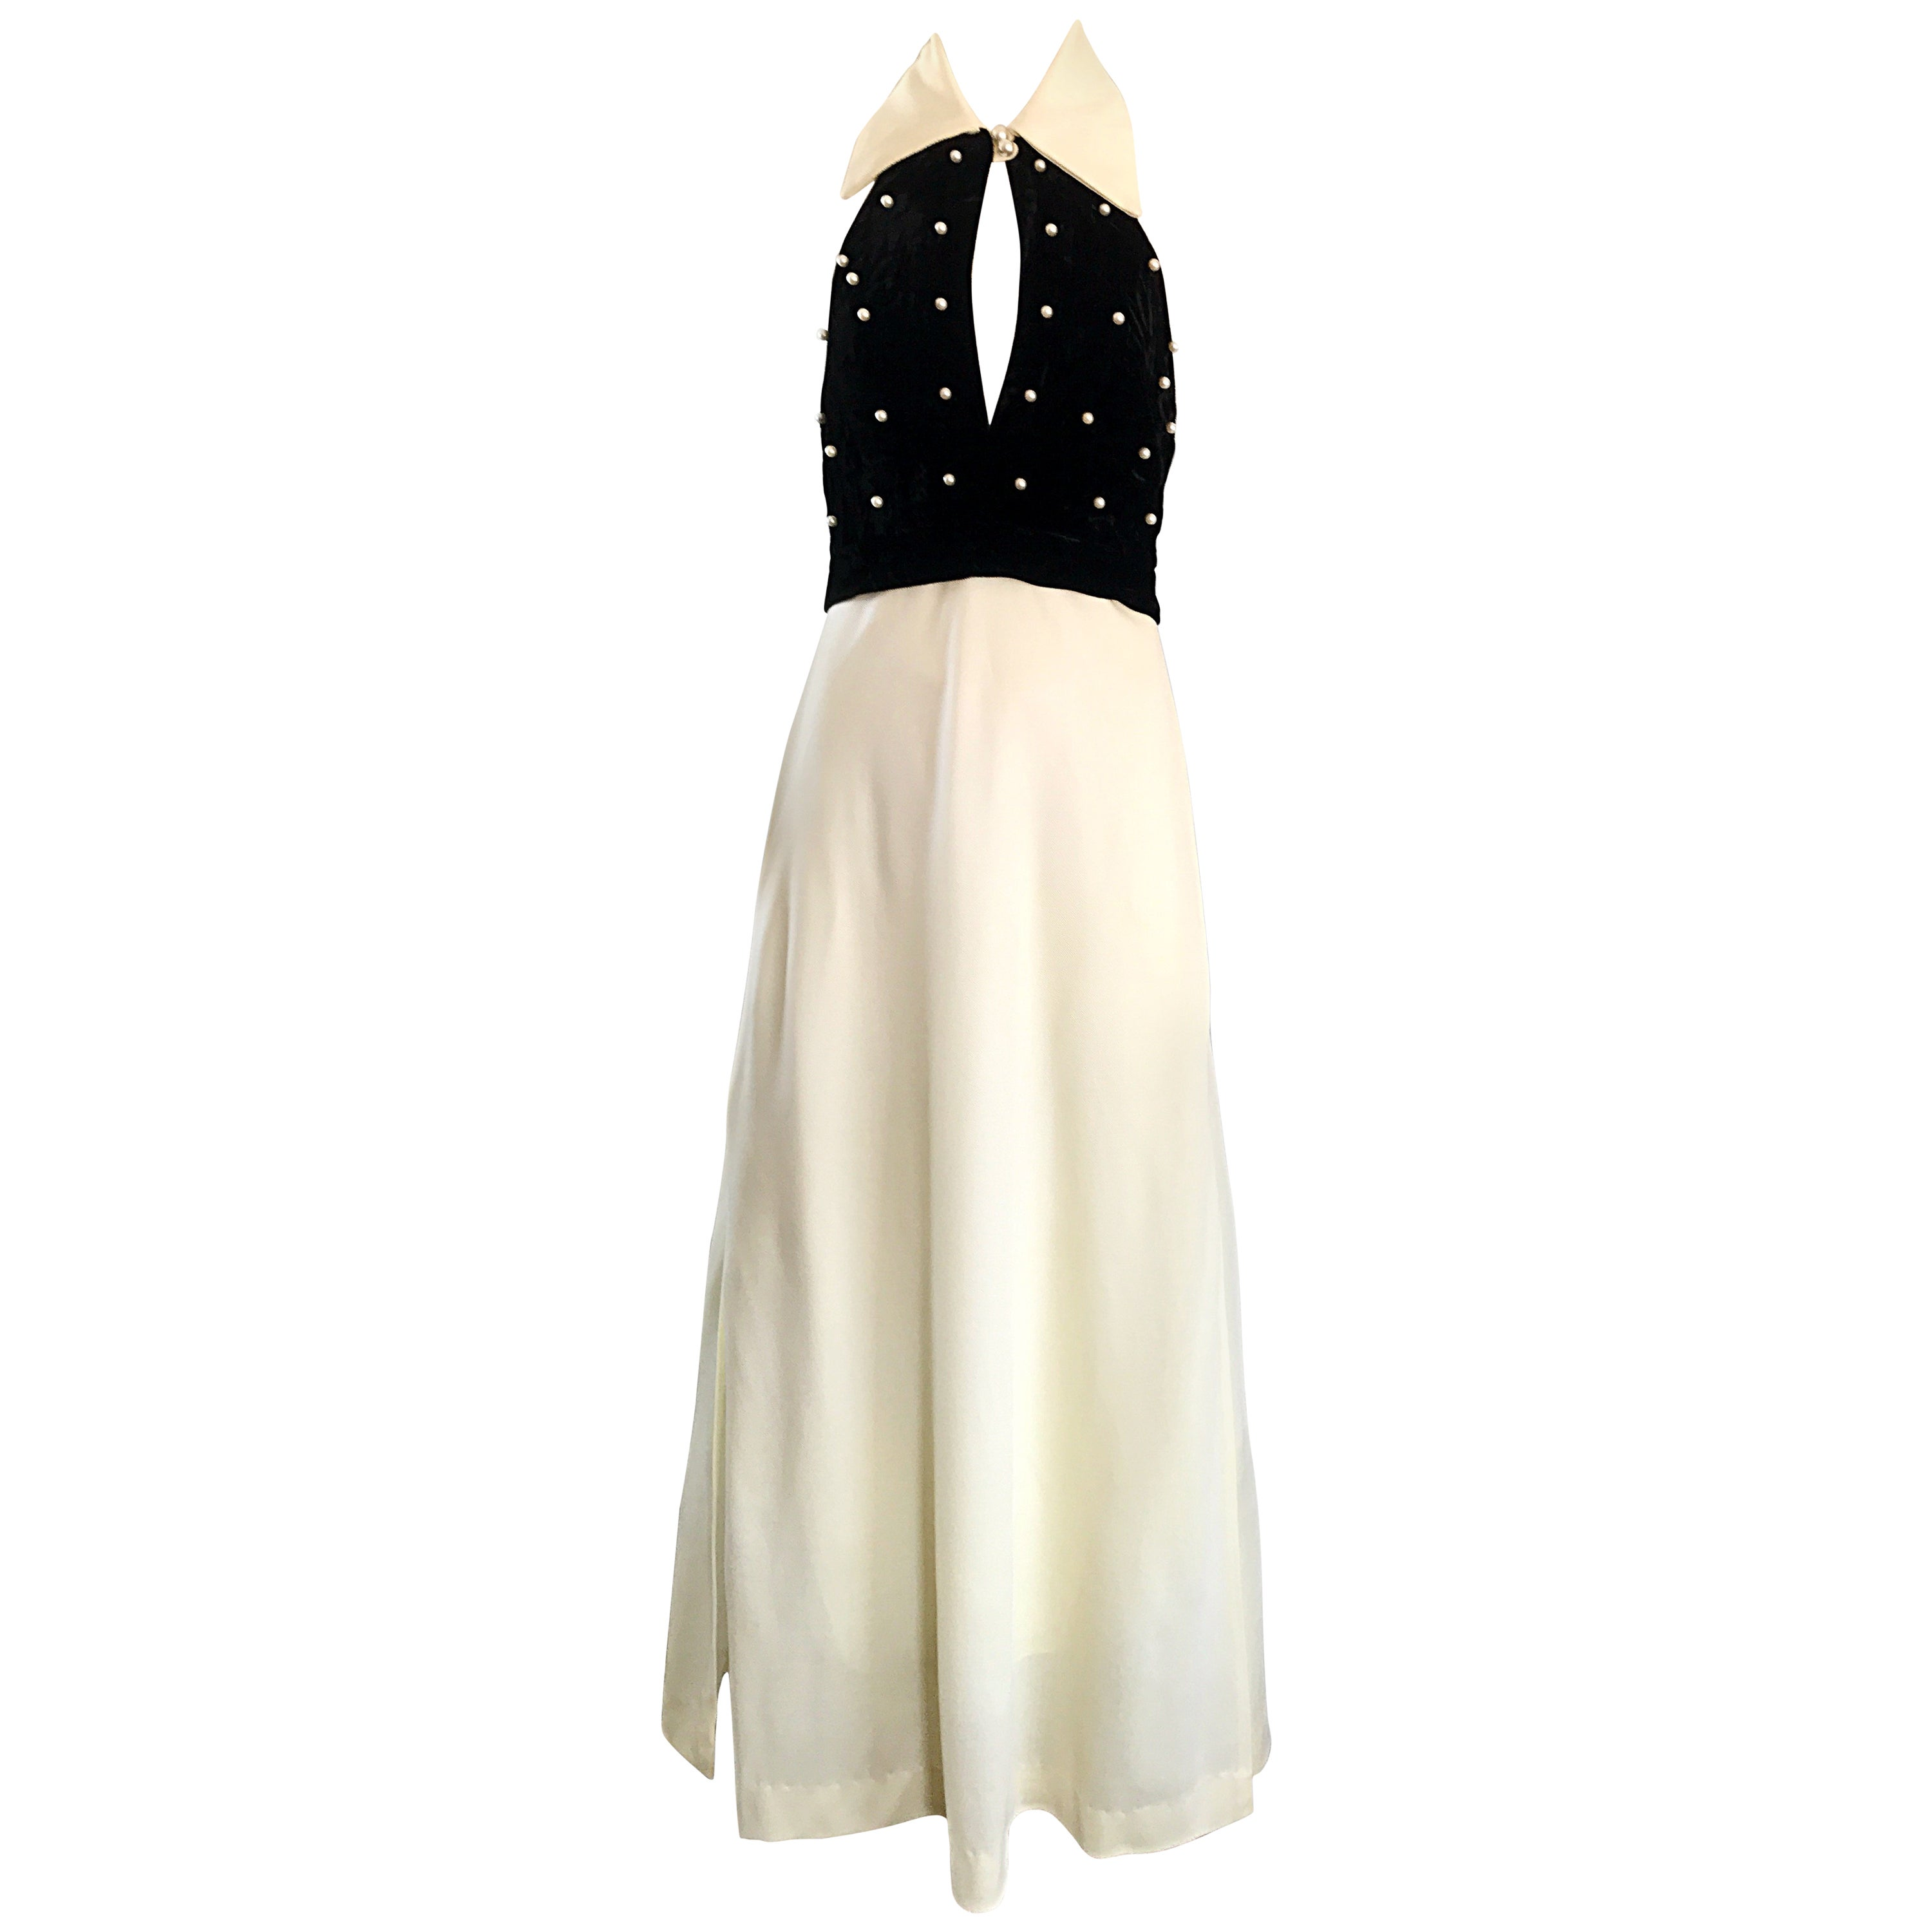 1970s Black and White Pearl Encrusted Peek-a-Boo Vintage 70s Maxi Dress